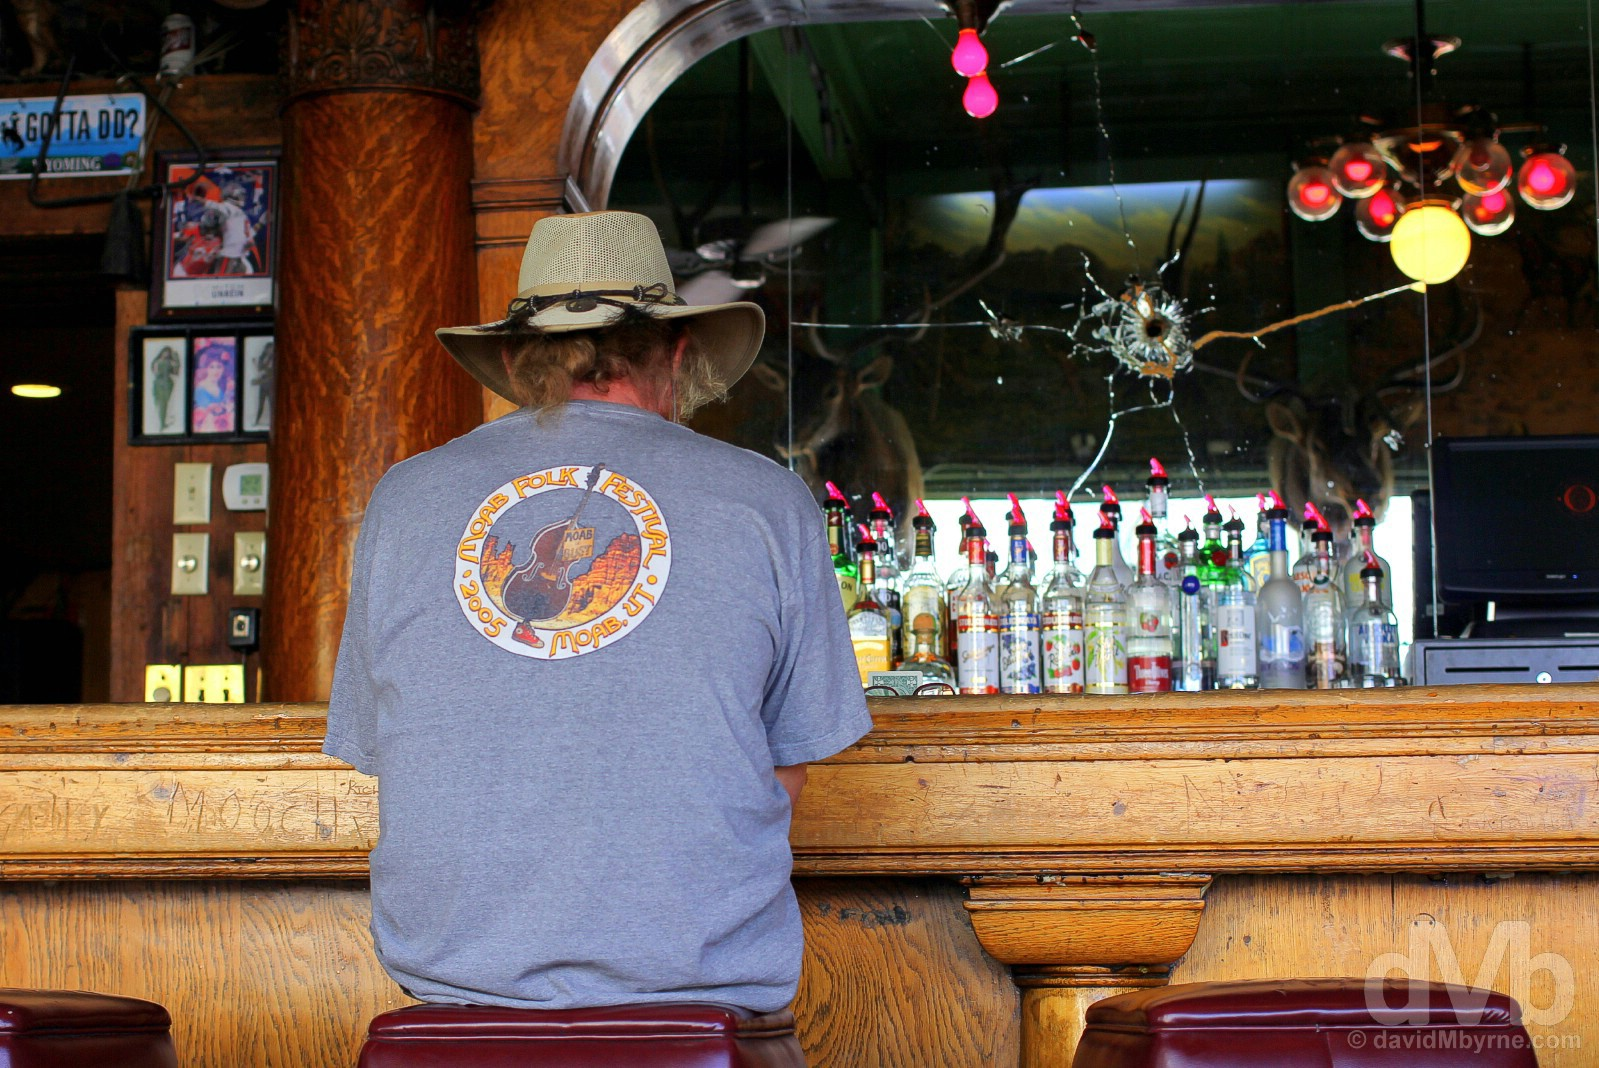 The Buckhorn Bar, Laramie, Wyoming, USA. September 14, 2016.